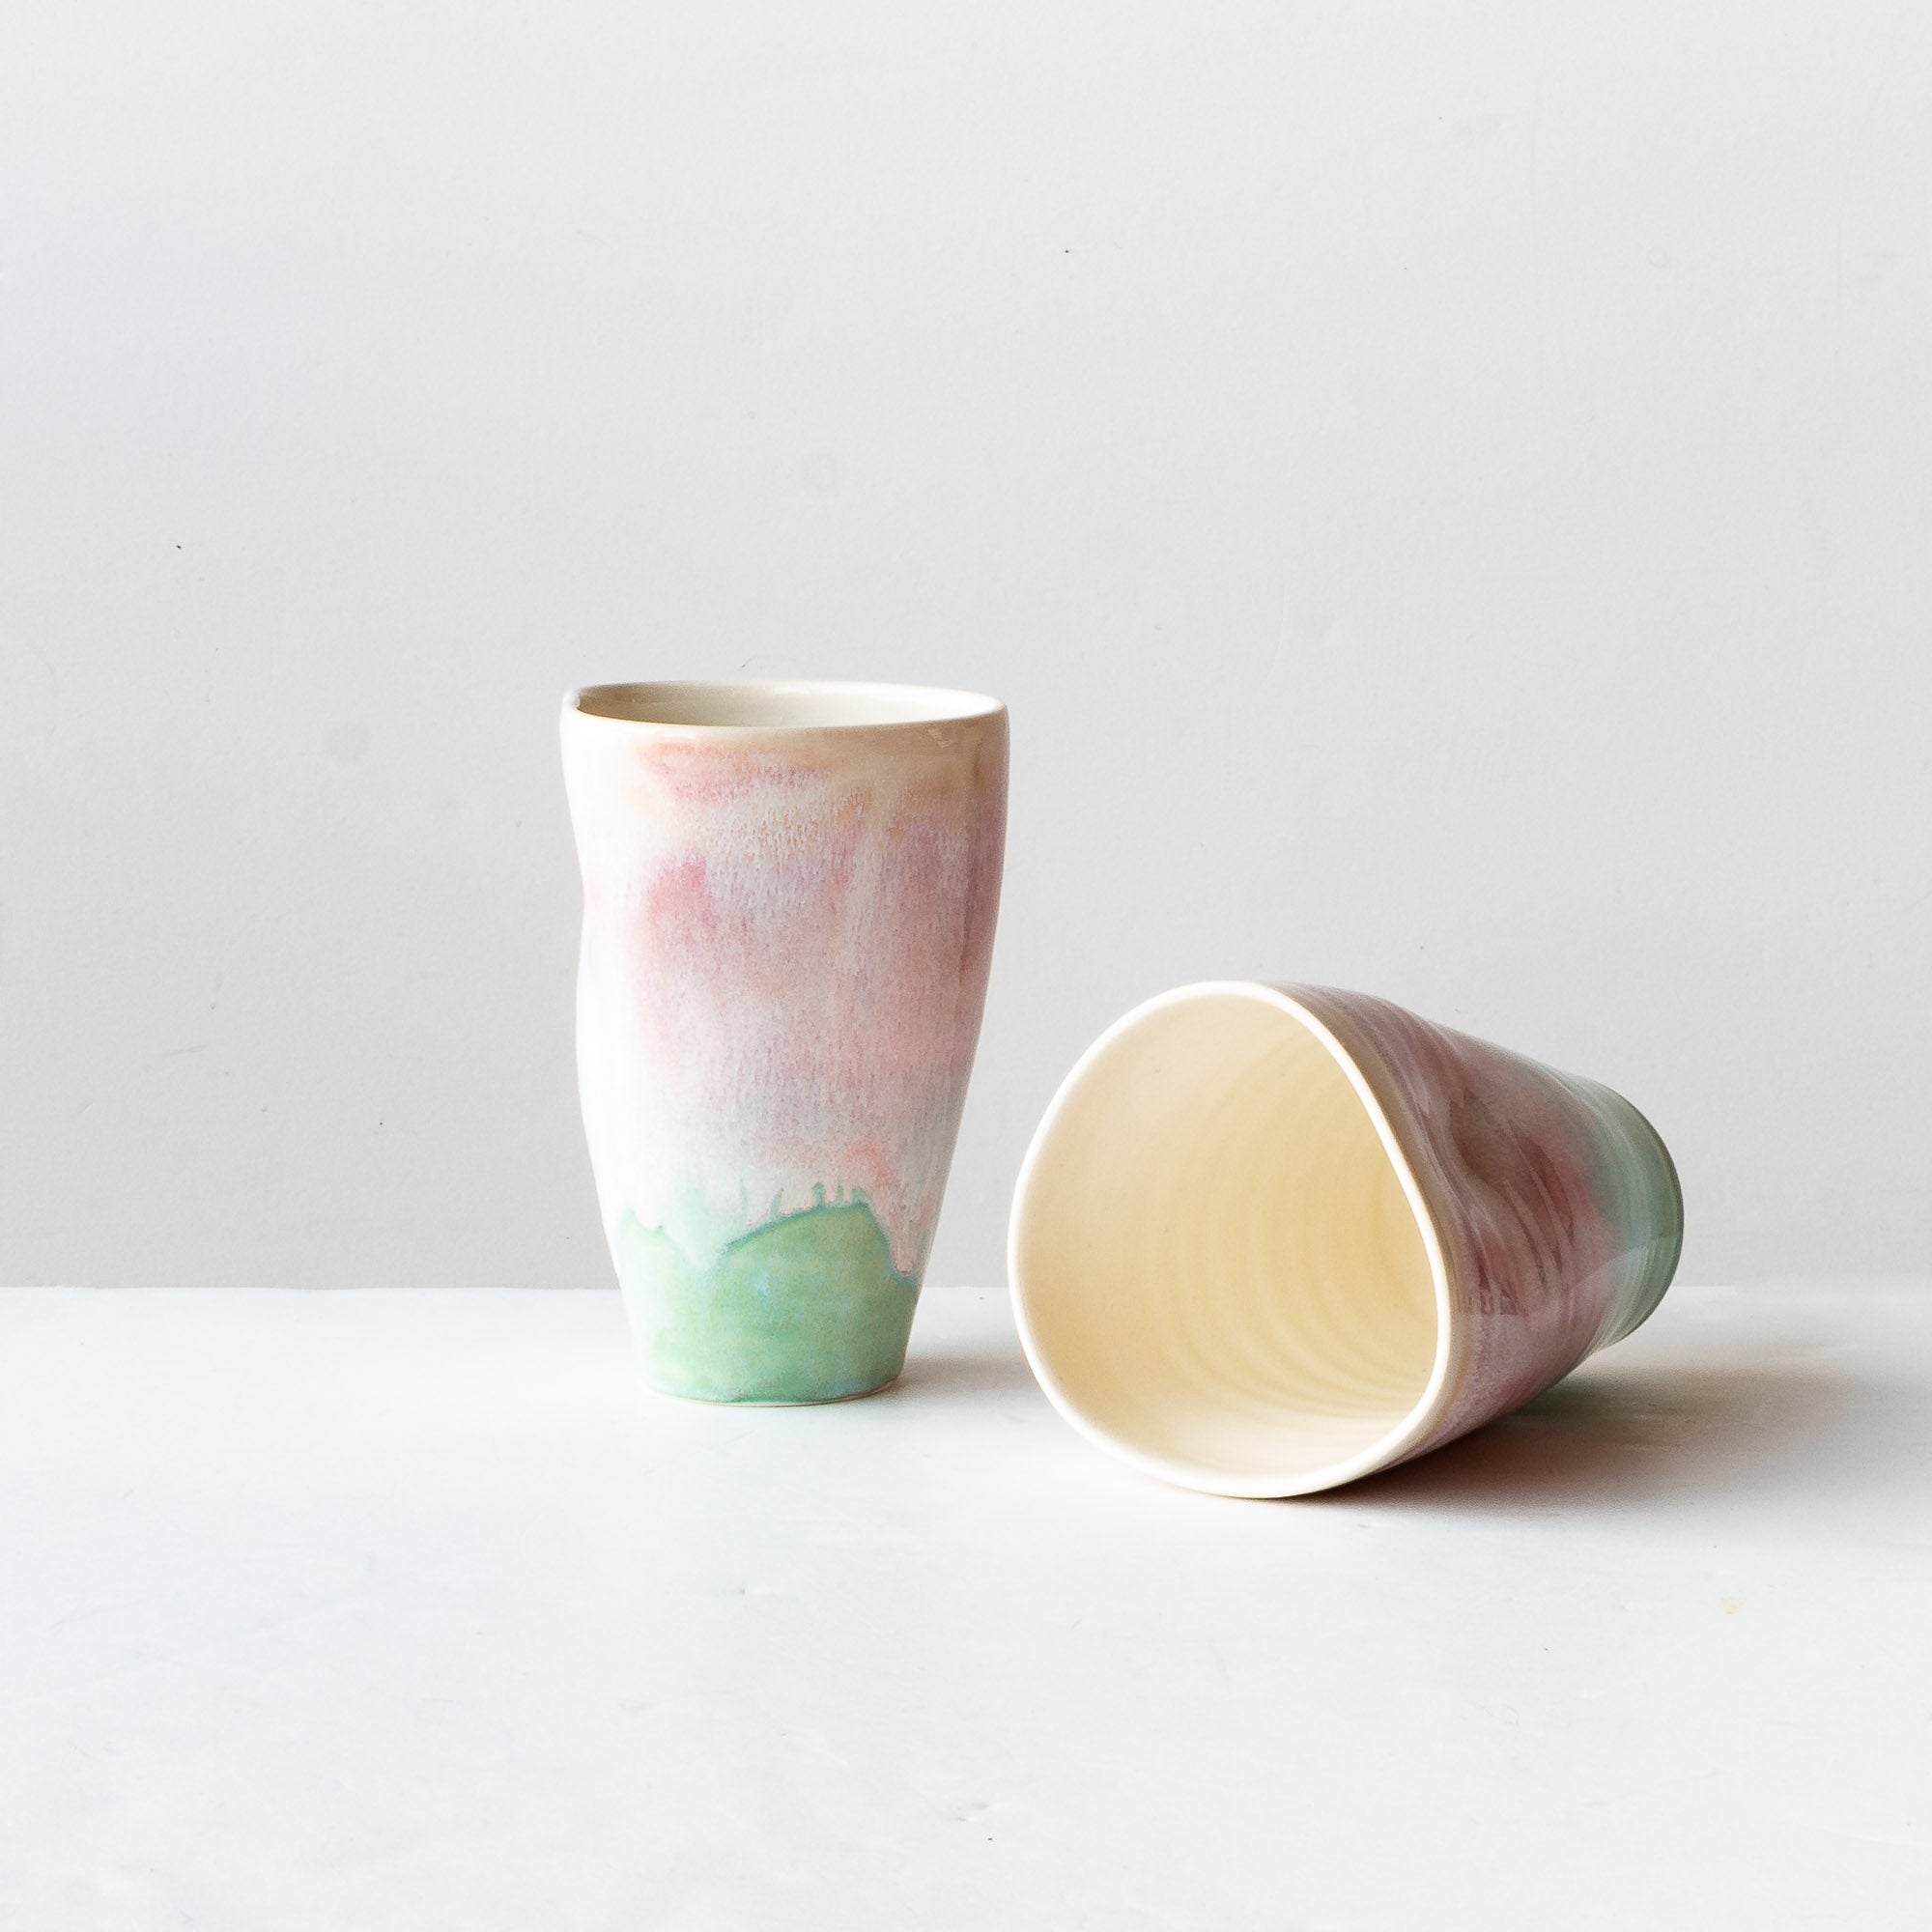 Two Handmade Large Ergonomic Tumblers - Watercolor - Sold by Chic & Basta